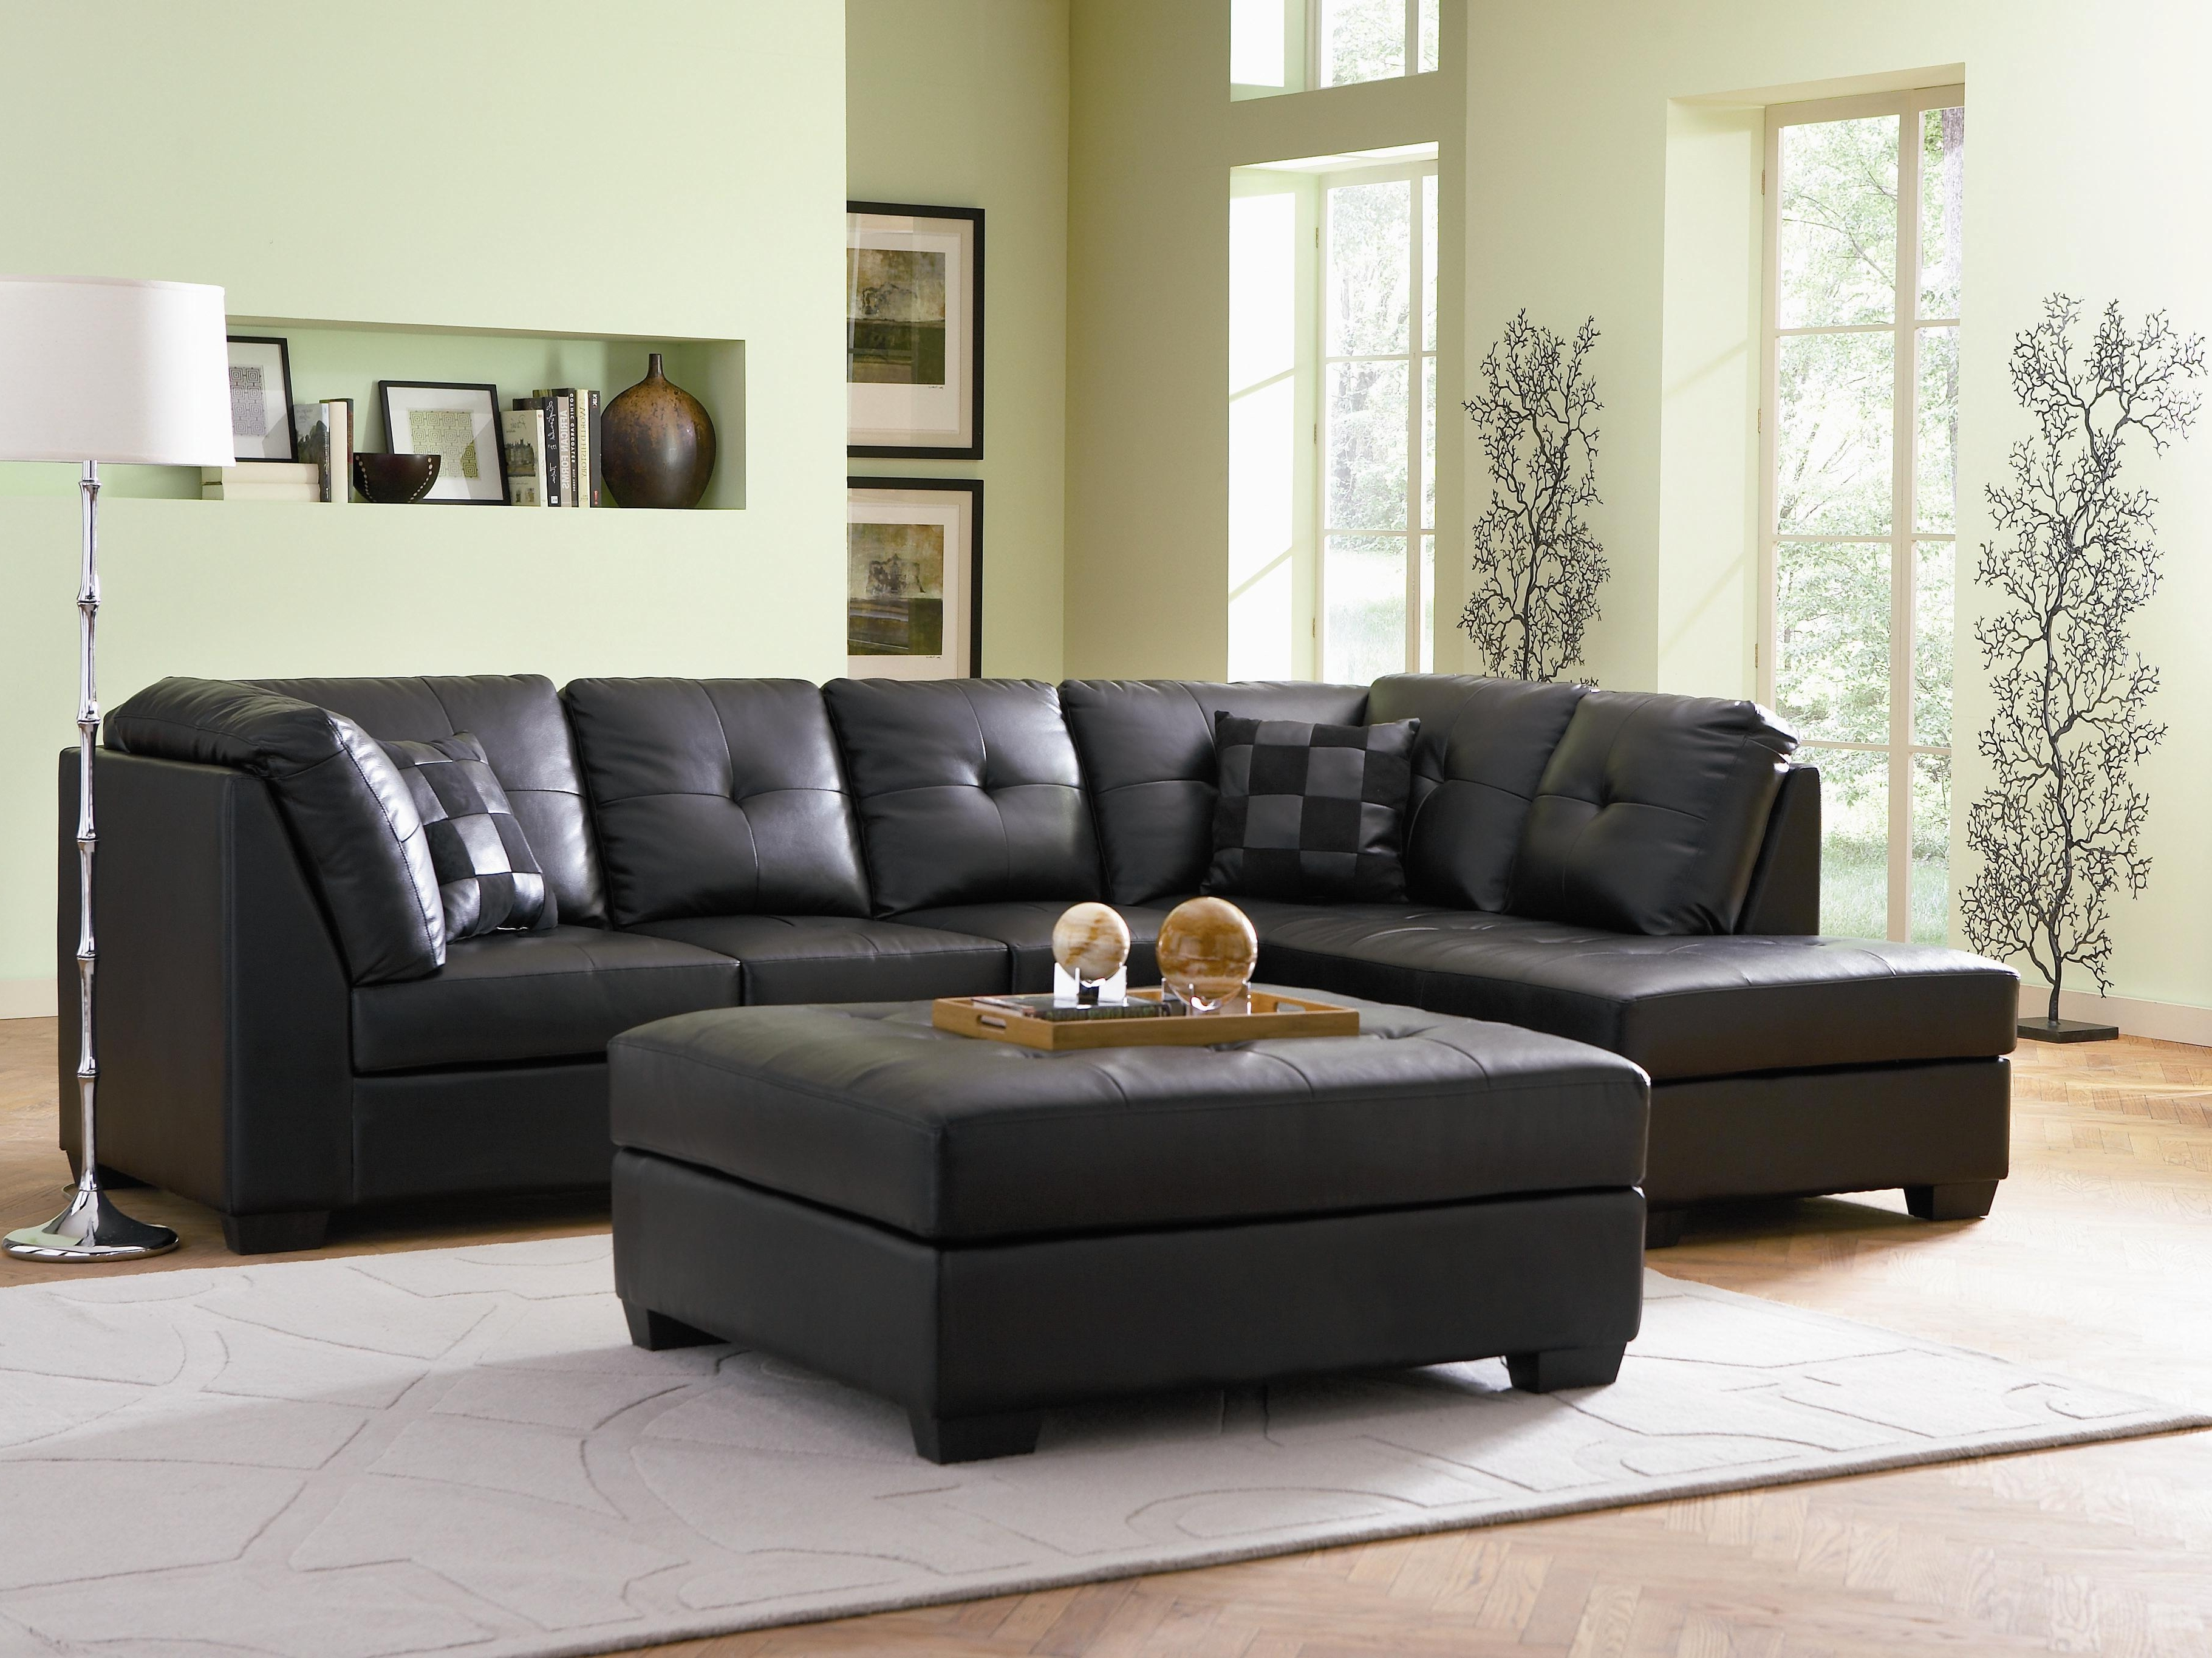 Darie Contemporary Style Black Bonded Leather Sofa Sectional W Inside Latest Leather Sectional Sofas With Ottoman (Gallery 4 of 20)